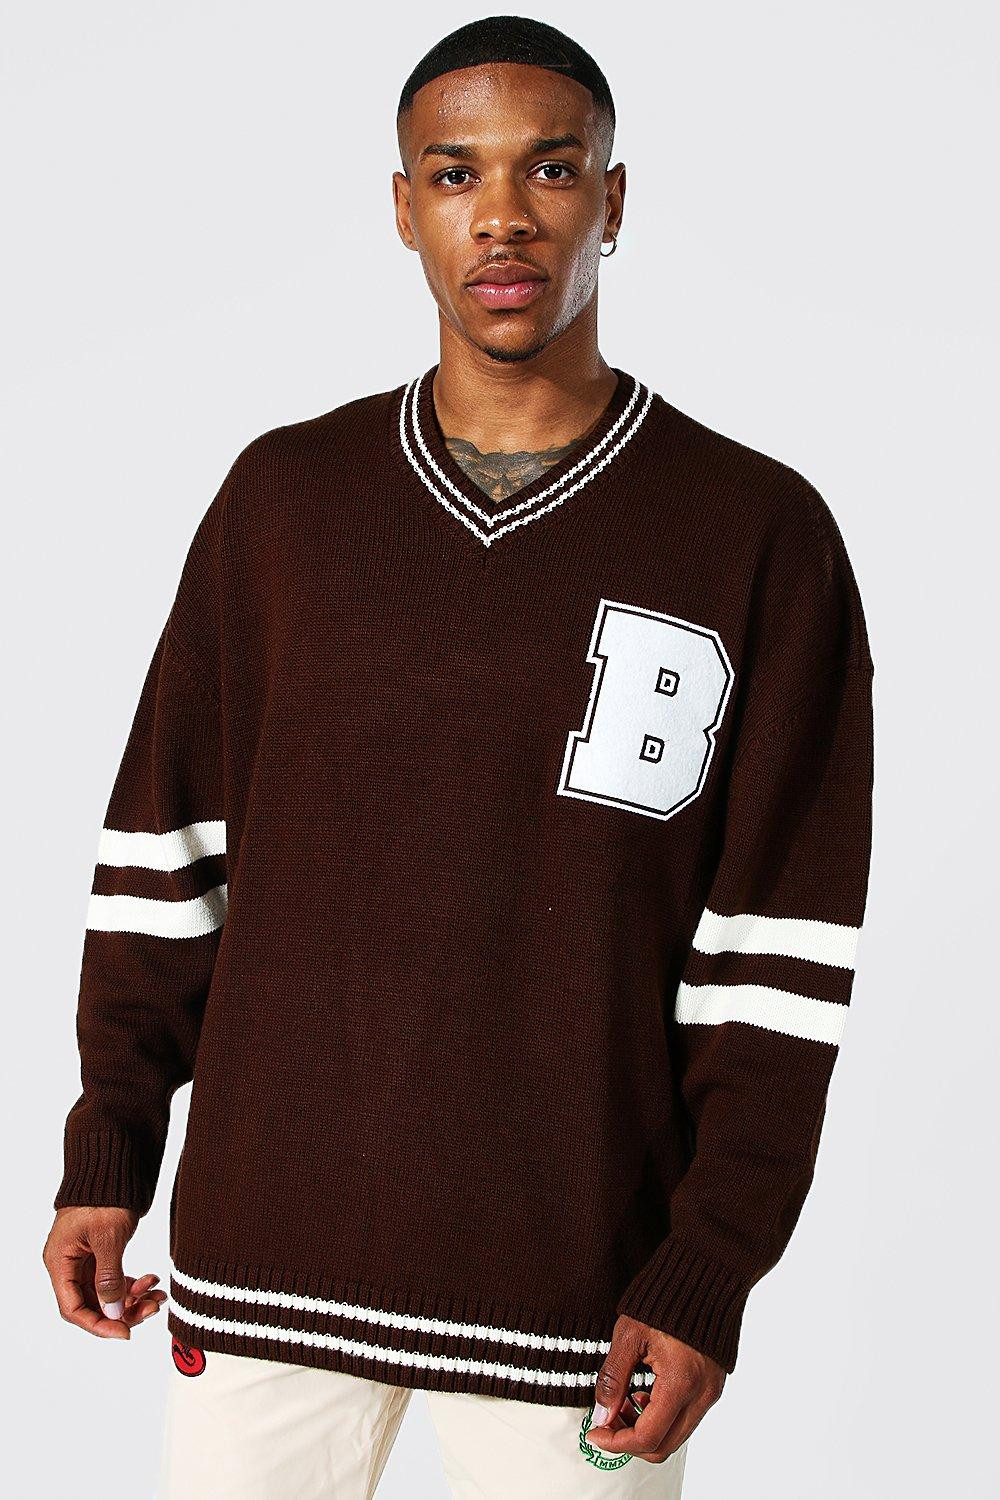 90s Outfits for Guys | Trendy, Party, Cool, Casaul Mens Oversized V Neck Varsity Badge Knitted Sweater - Brown $19.20 AT vintagedancer.com